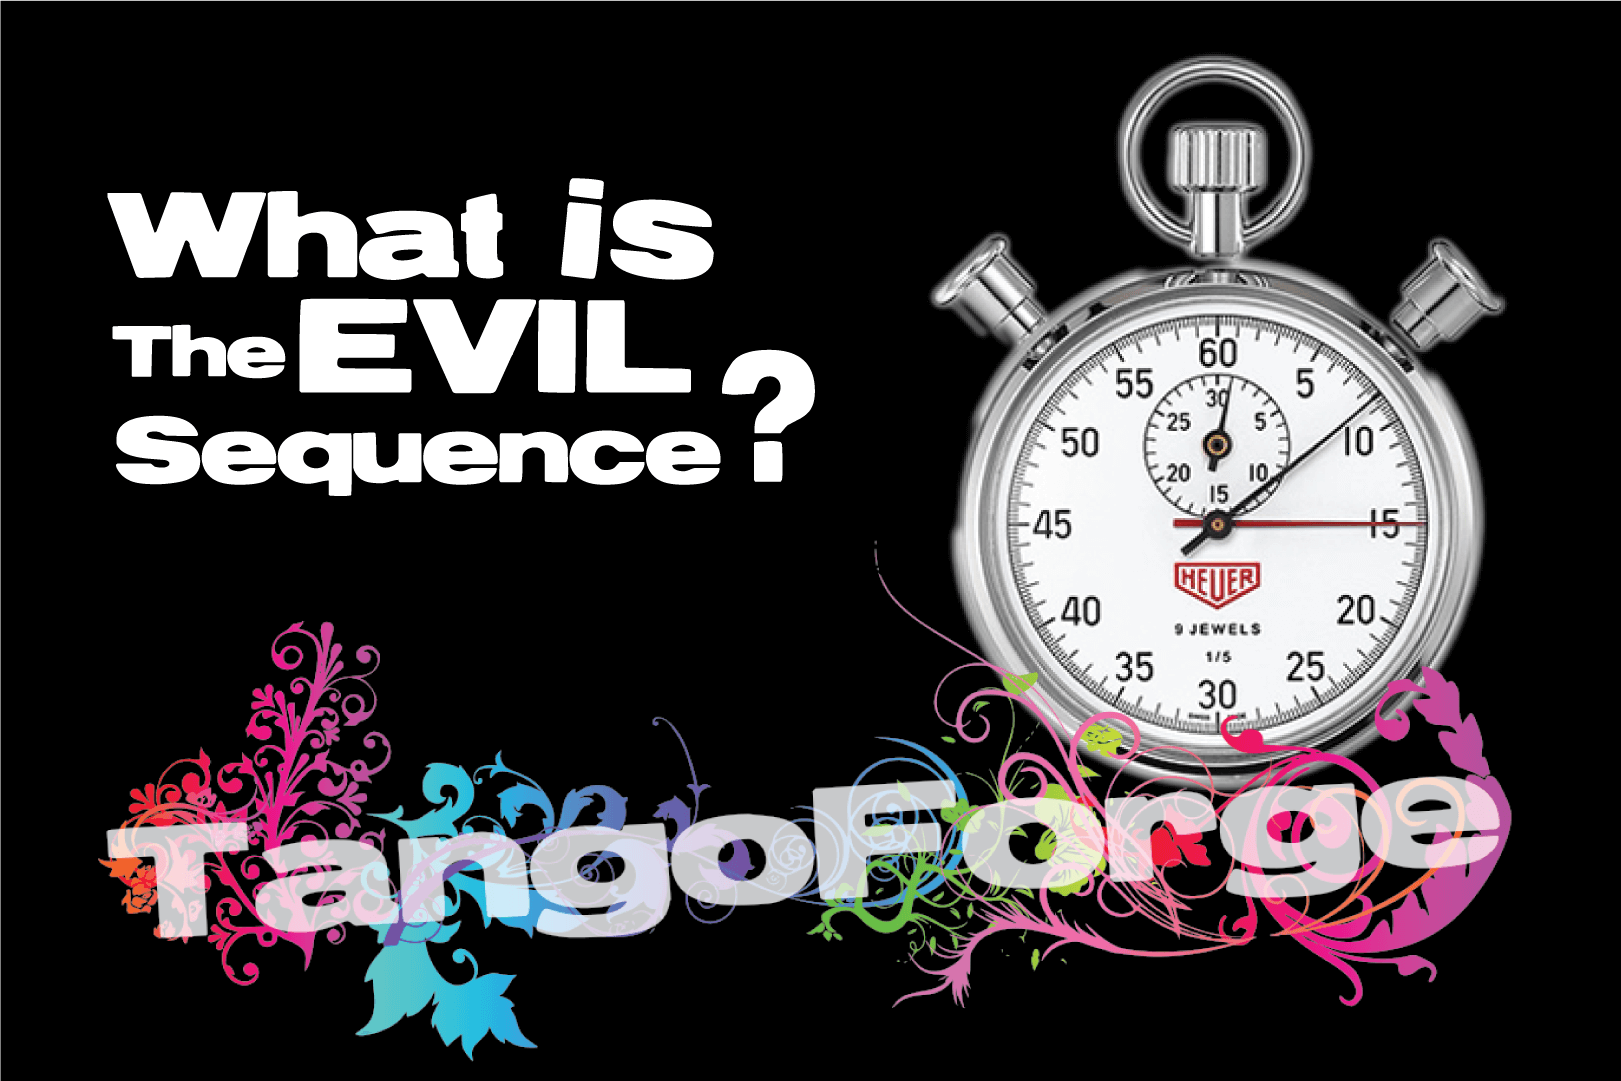 evil sequence logo